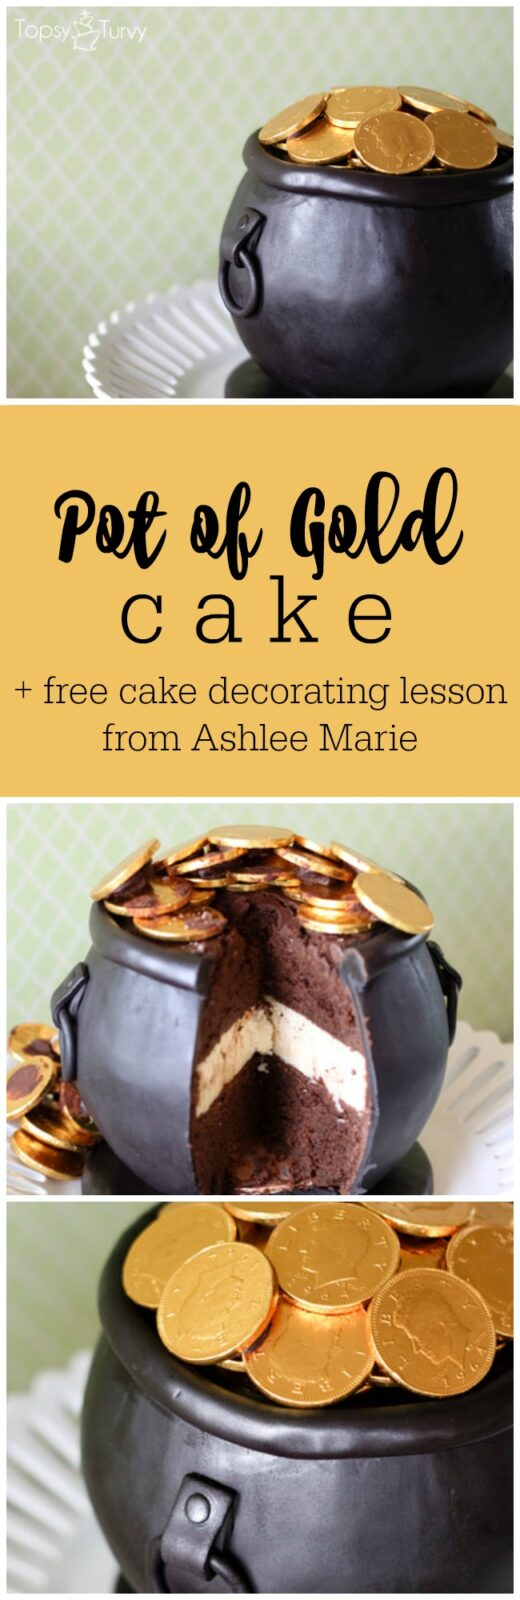 Pot of Gold Cake and free cake decorating video lesson from Ashlee Marie